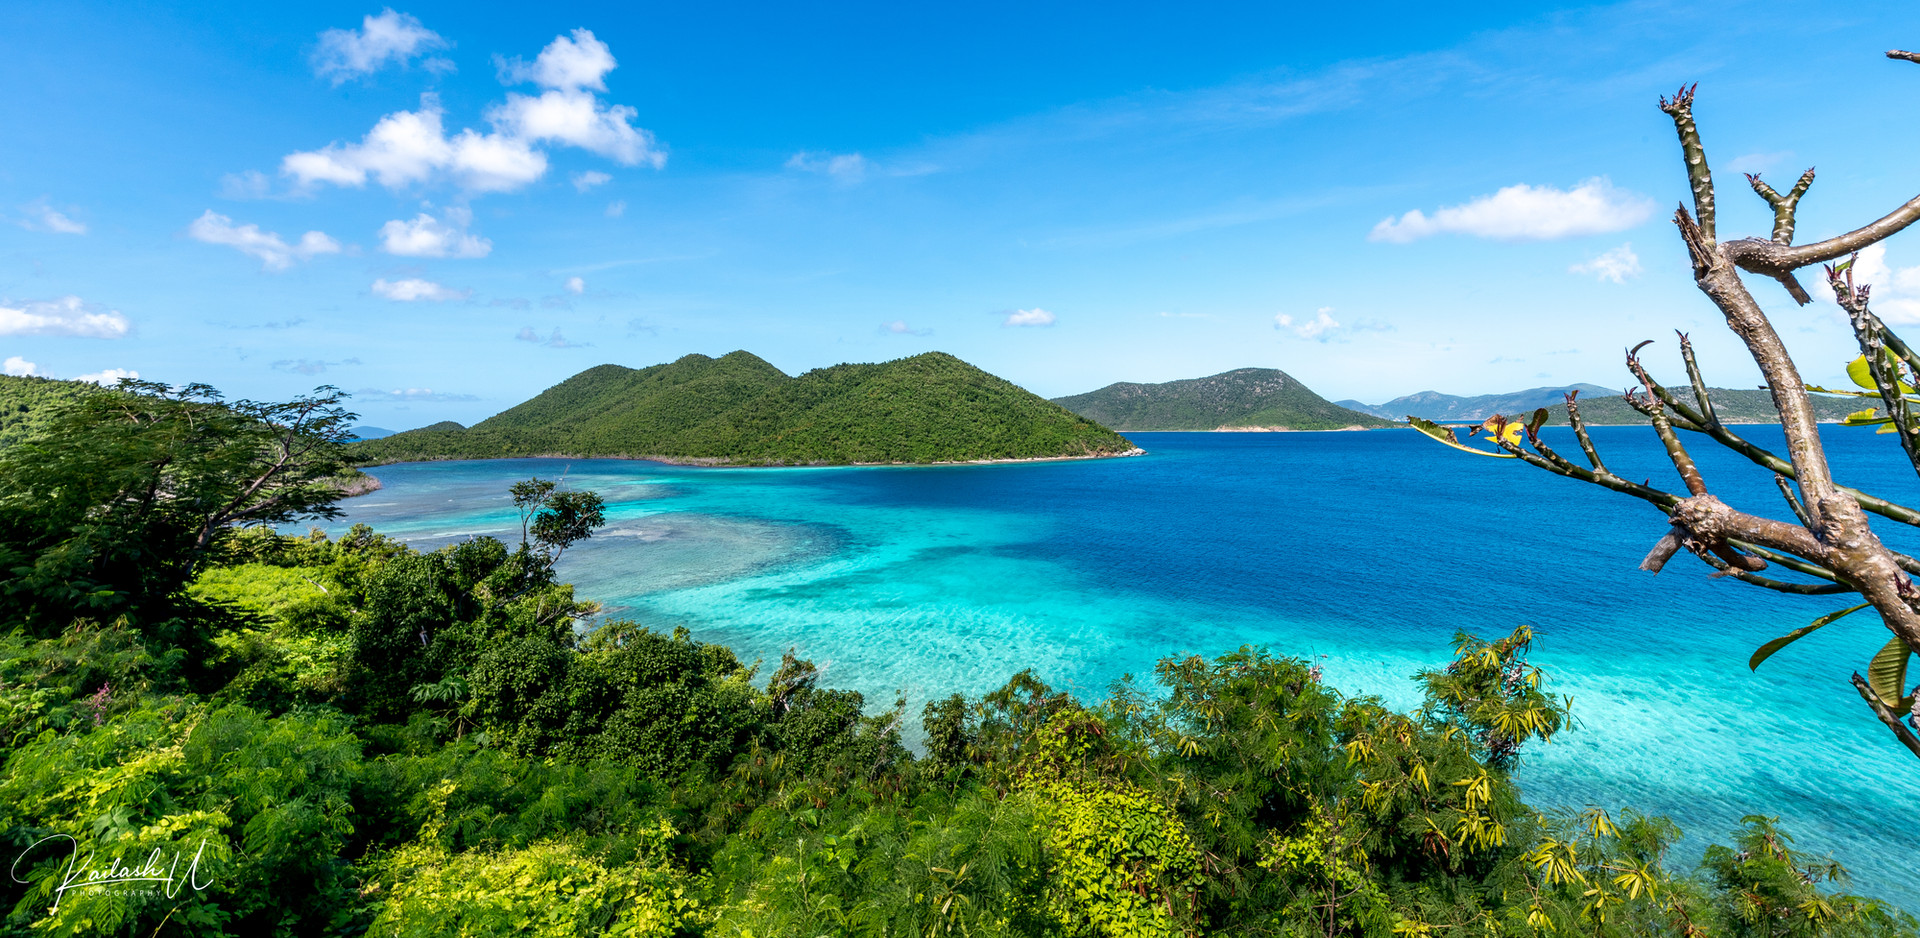 Leinster Bay, St. John, The Virgin Islands of the United States